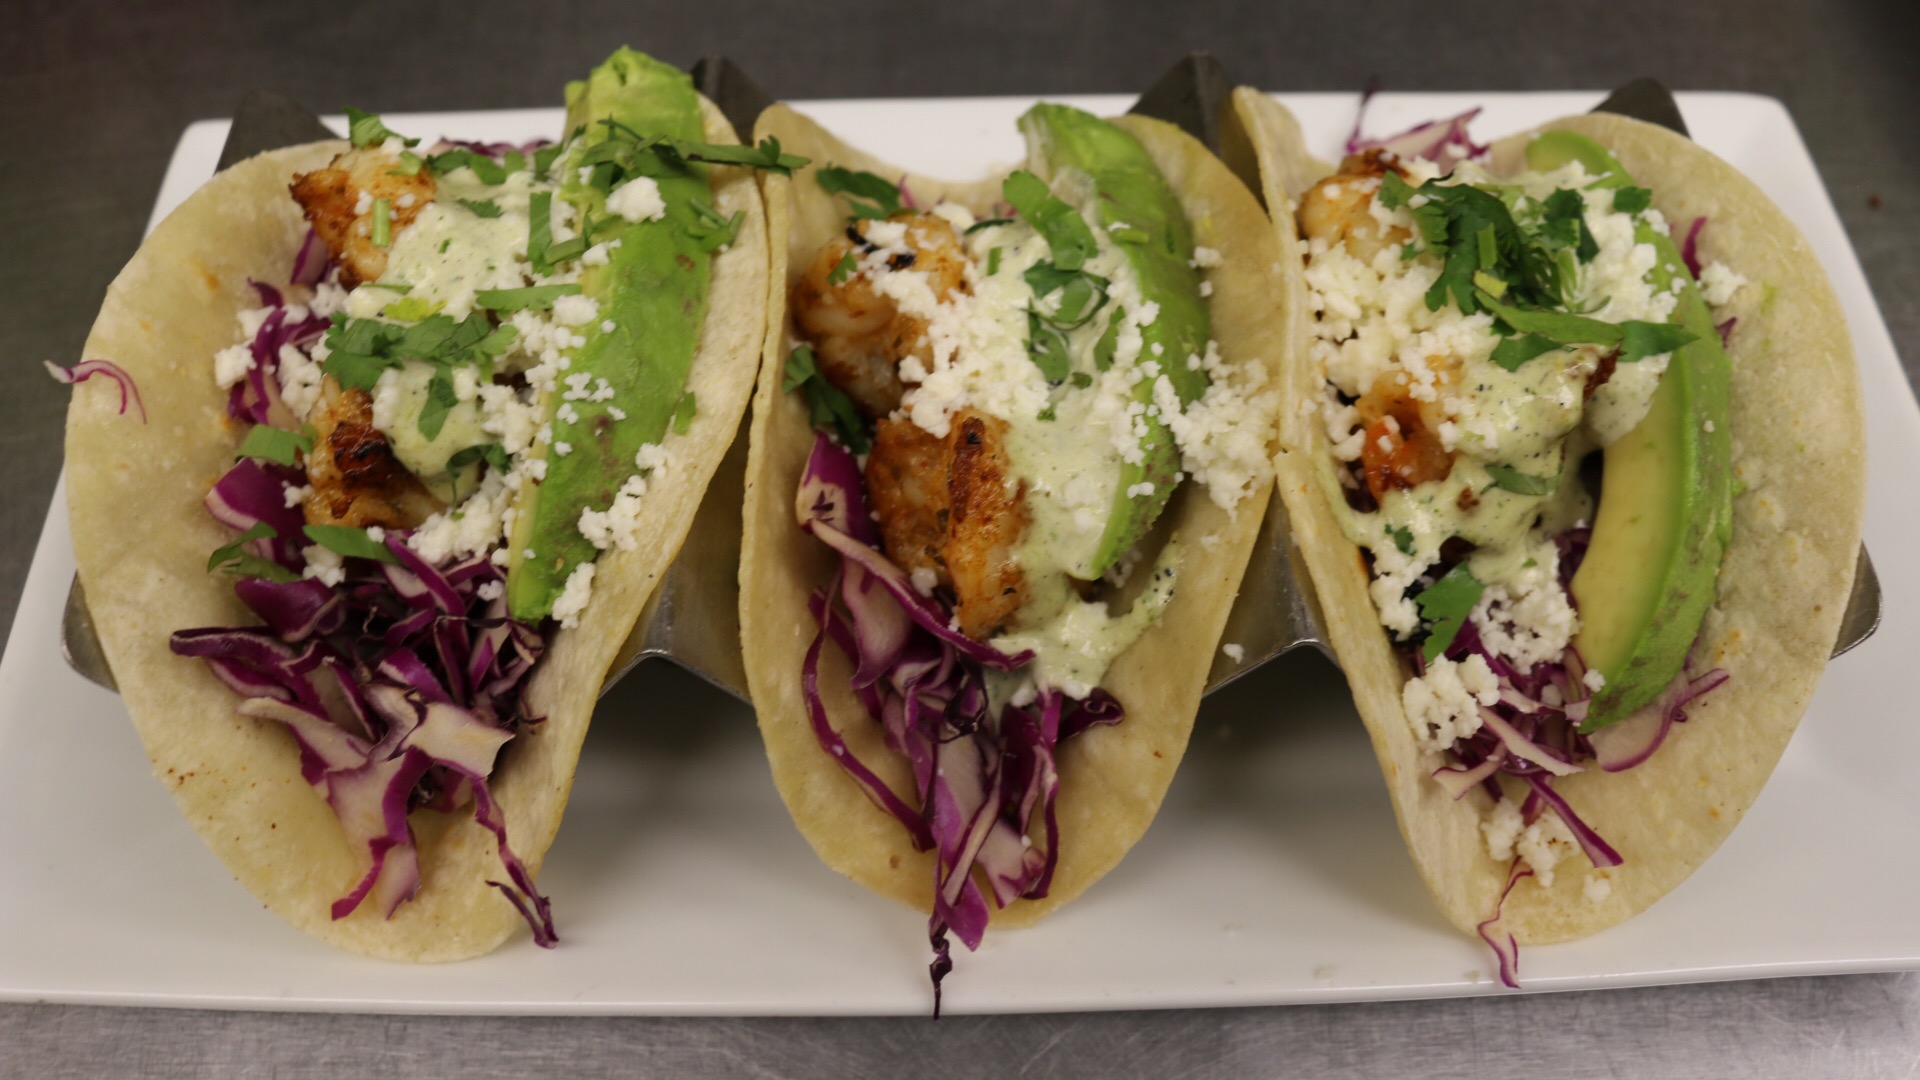 3 fish tacos with avocado, shredded cabbage, and cheese